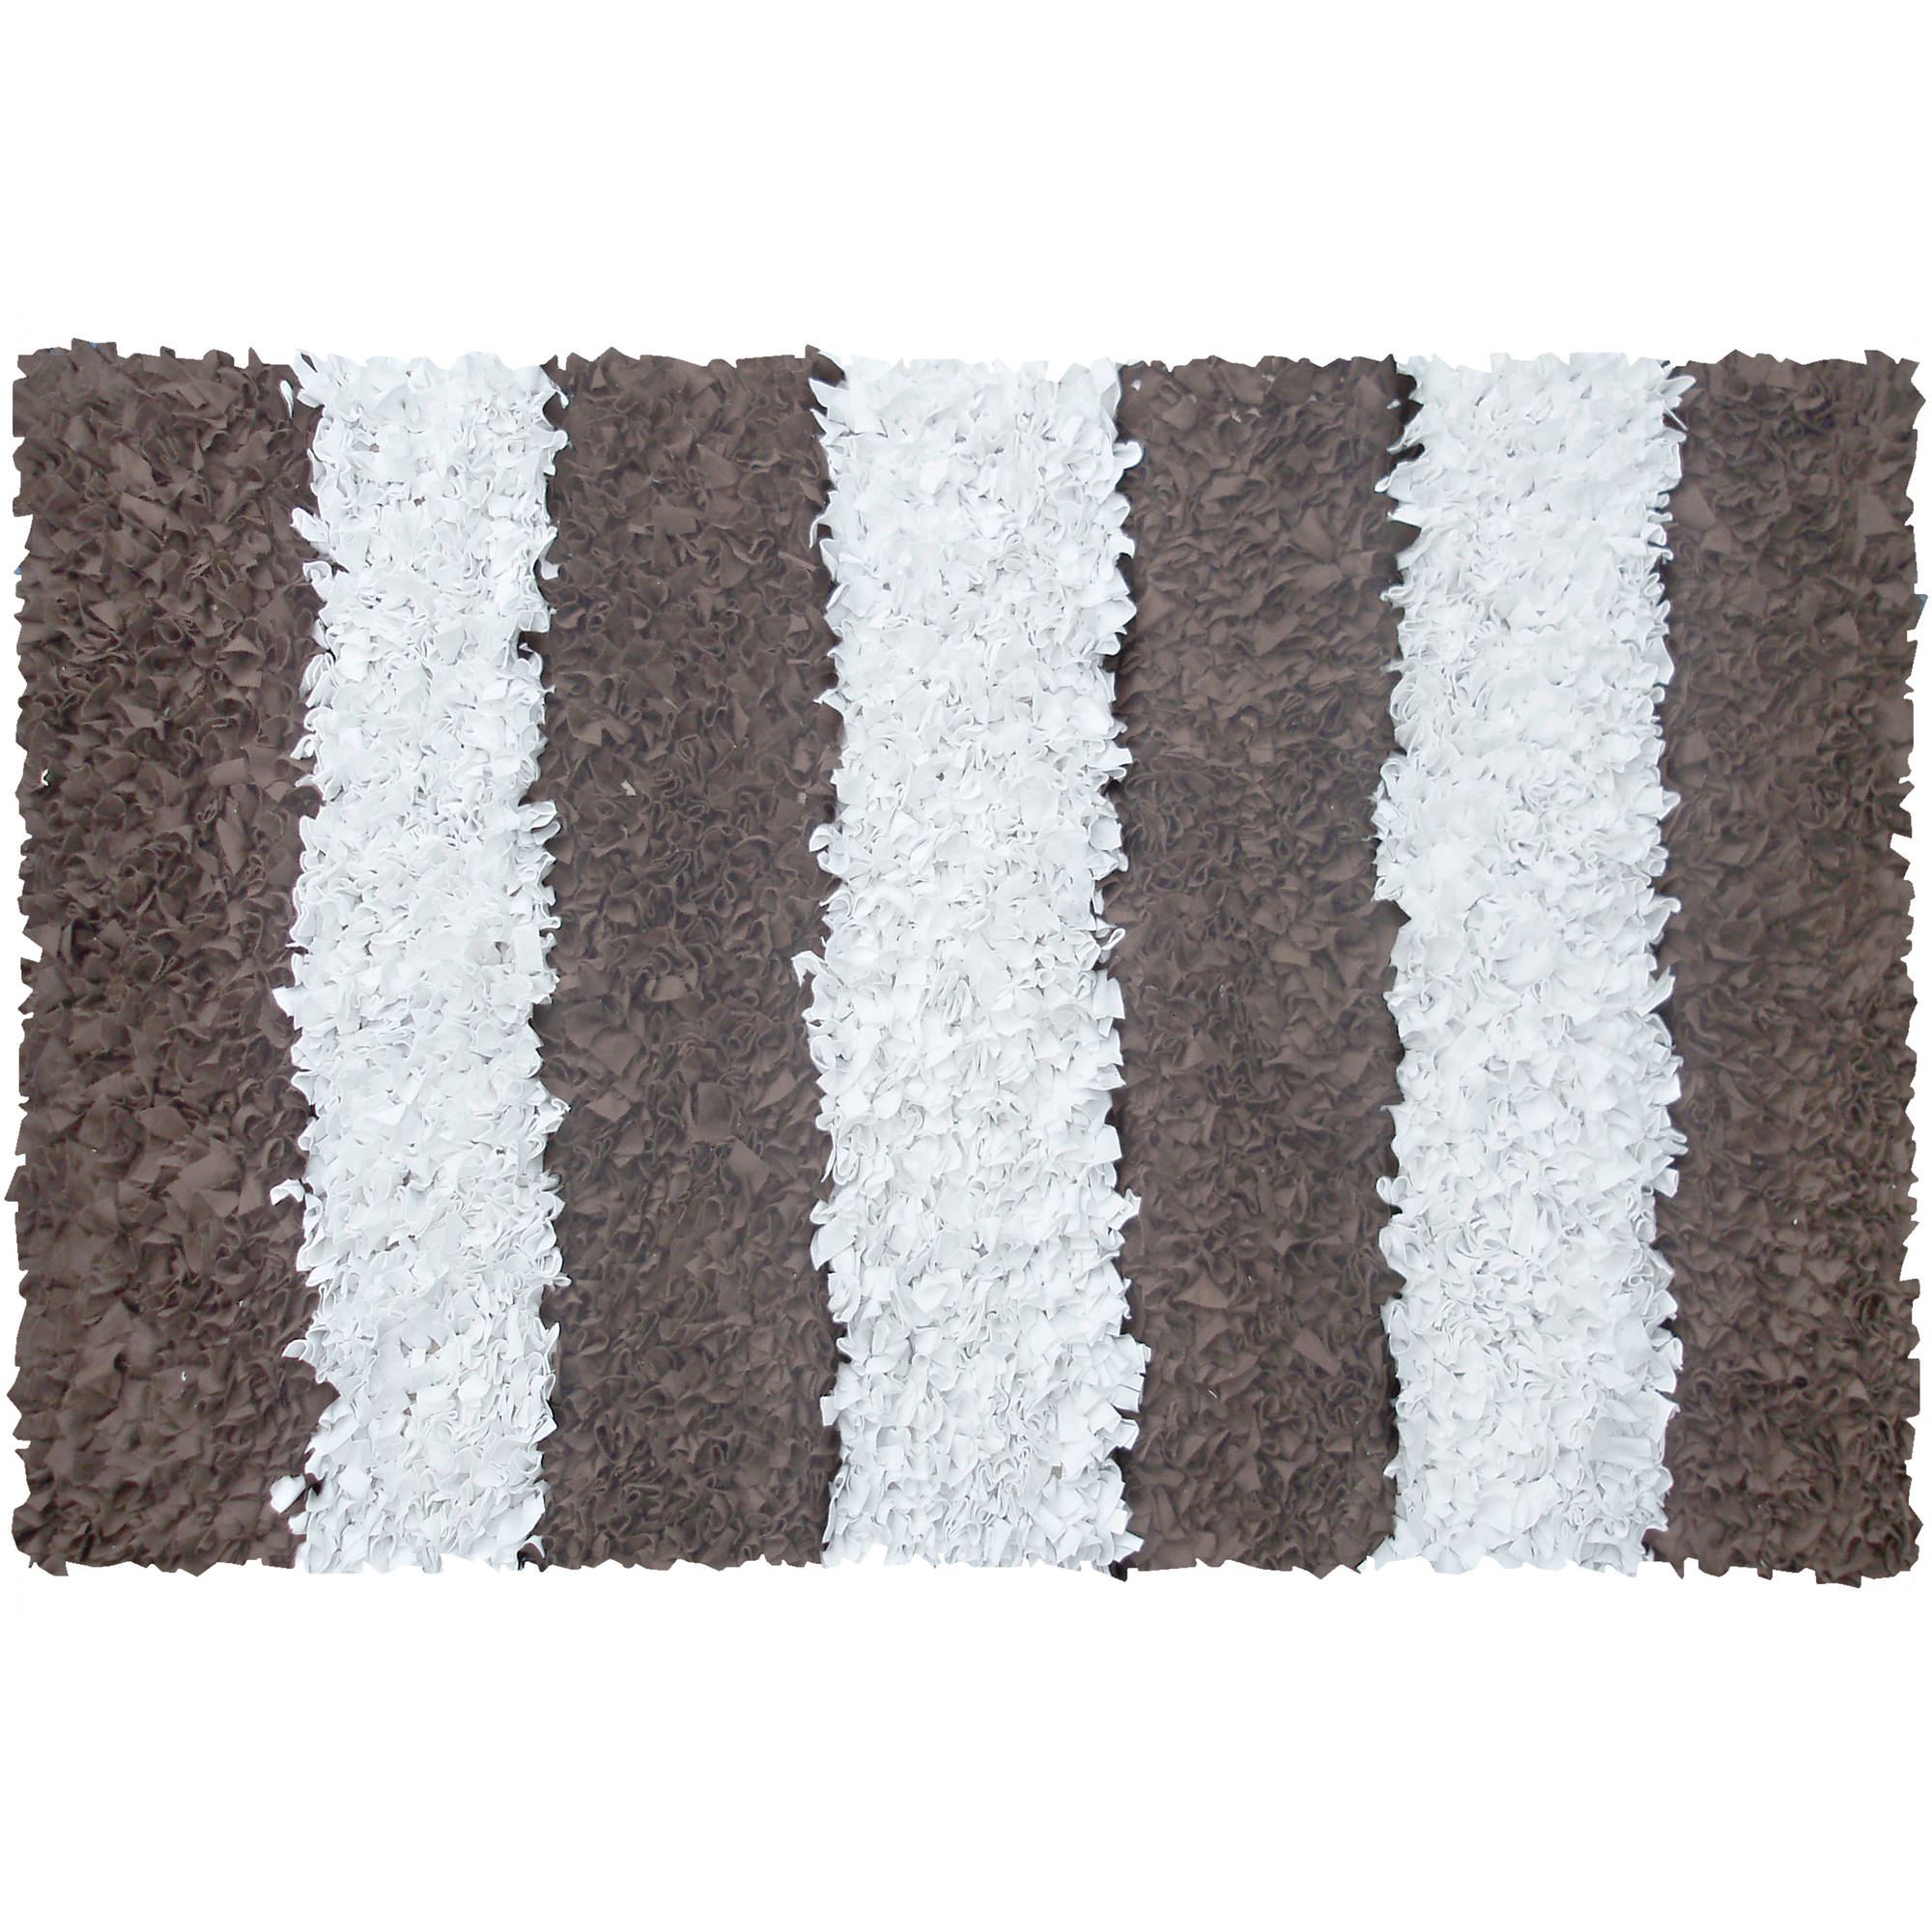 The Rug Market Stripe Shag Area Rug, Brown, 2.8' x 4.8'